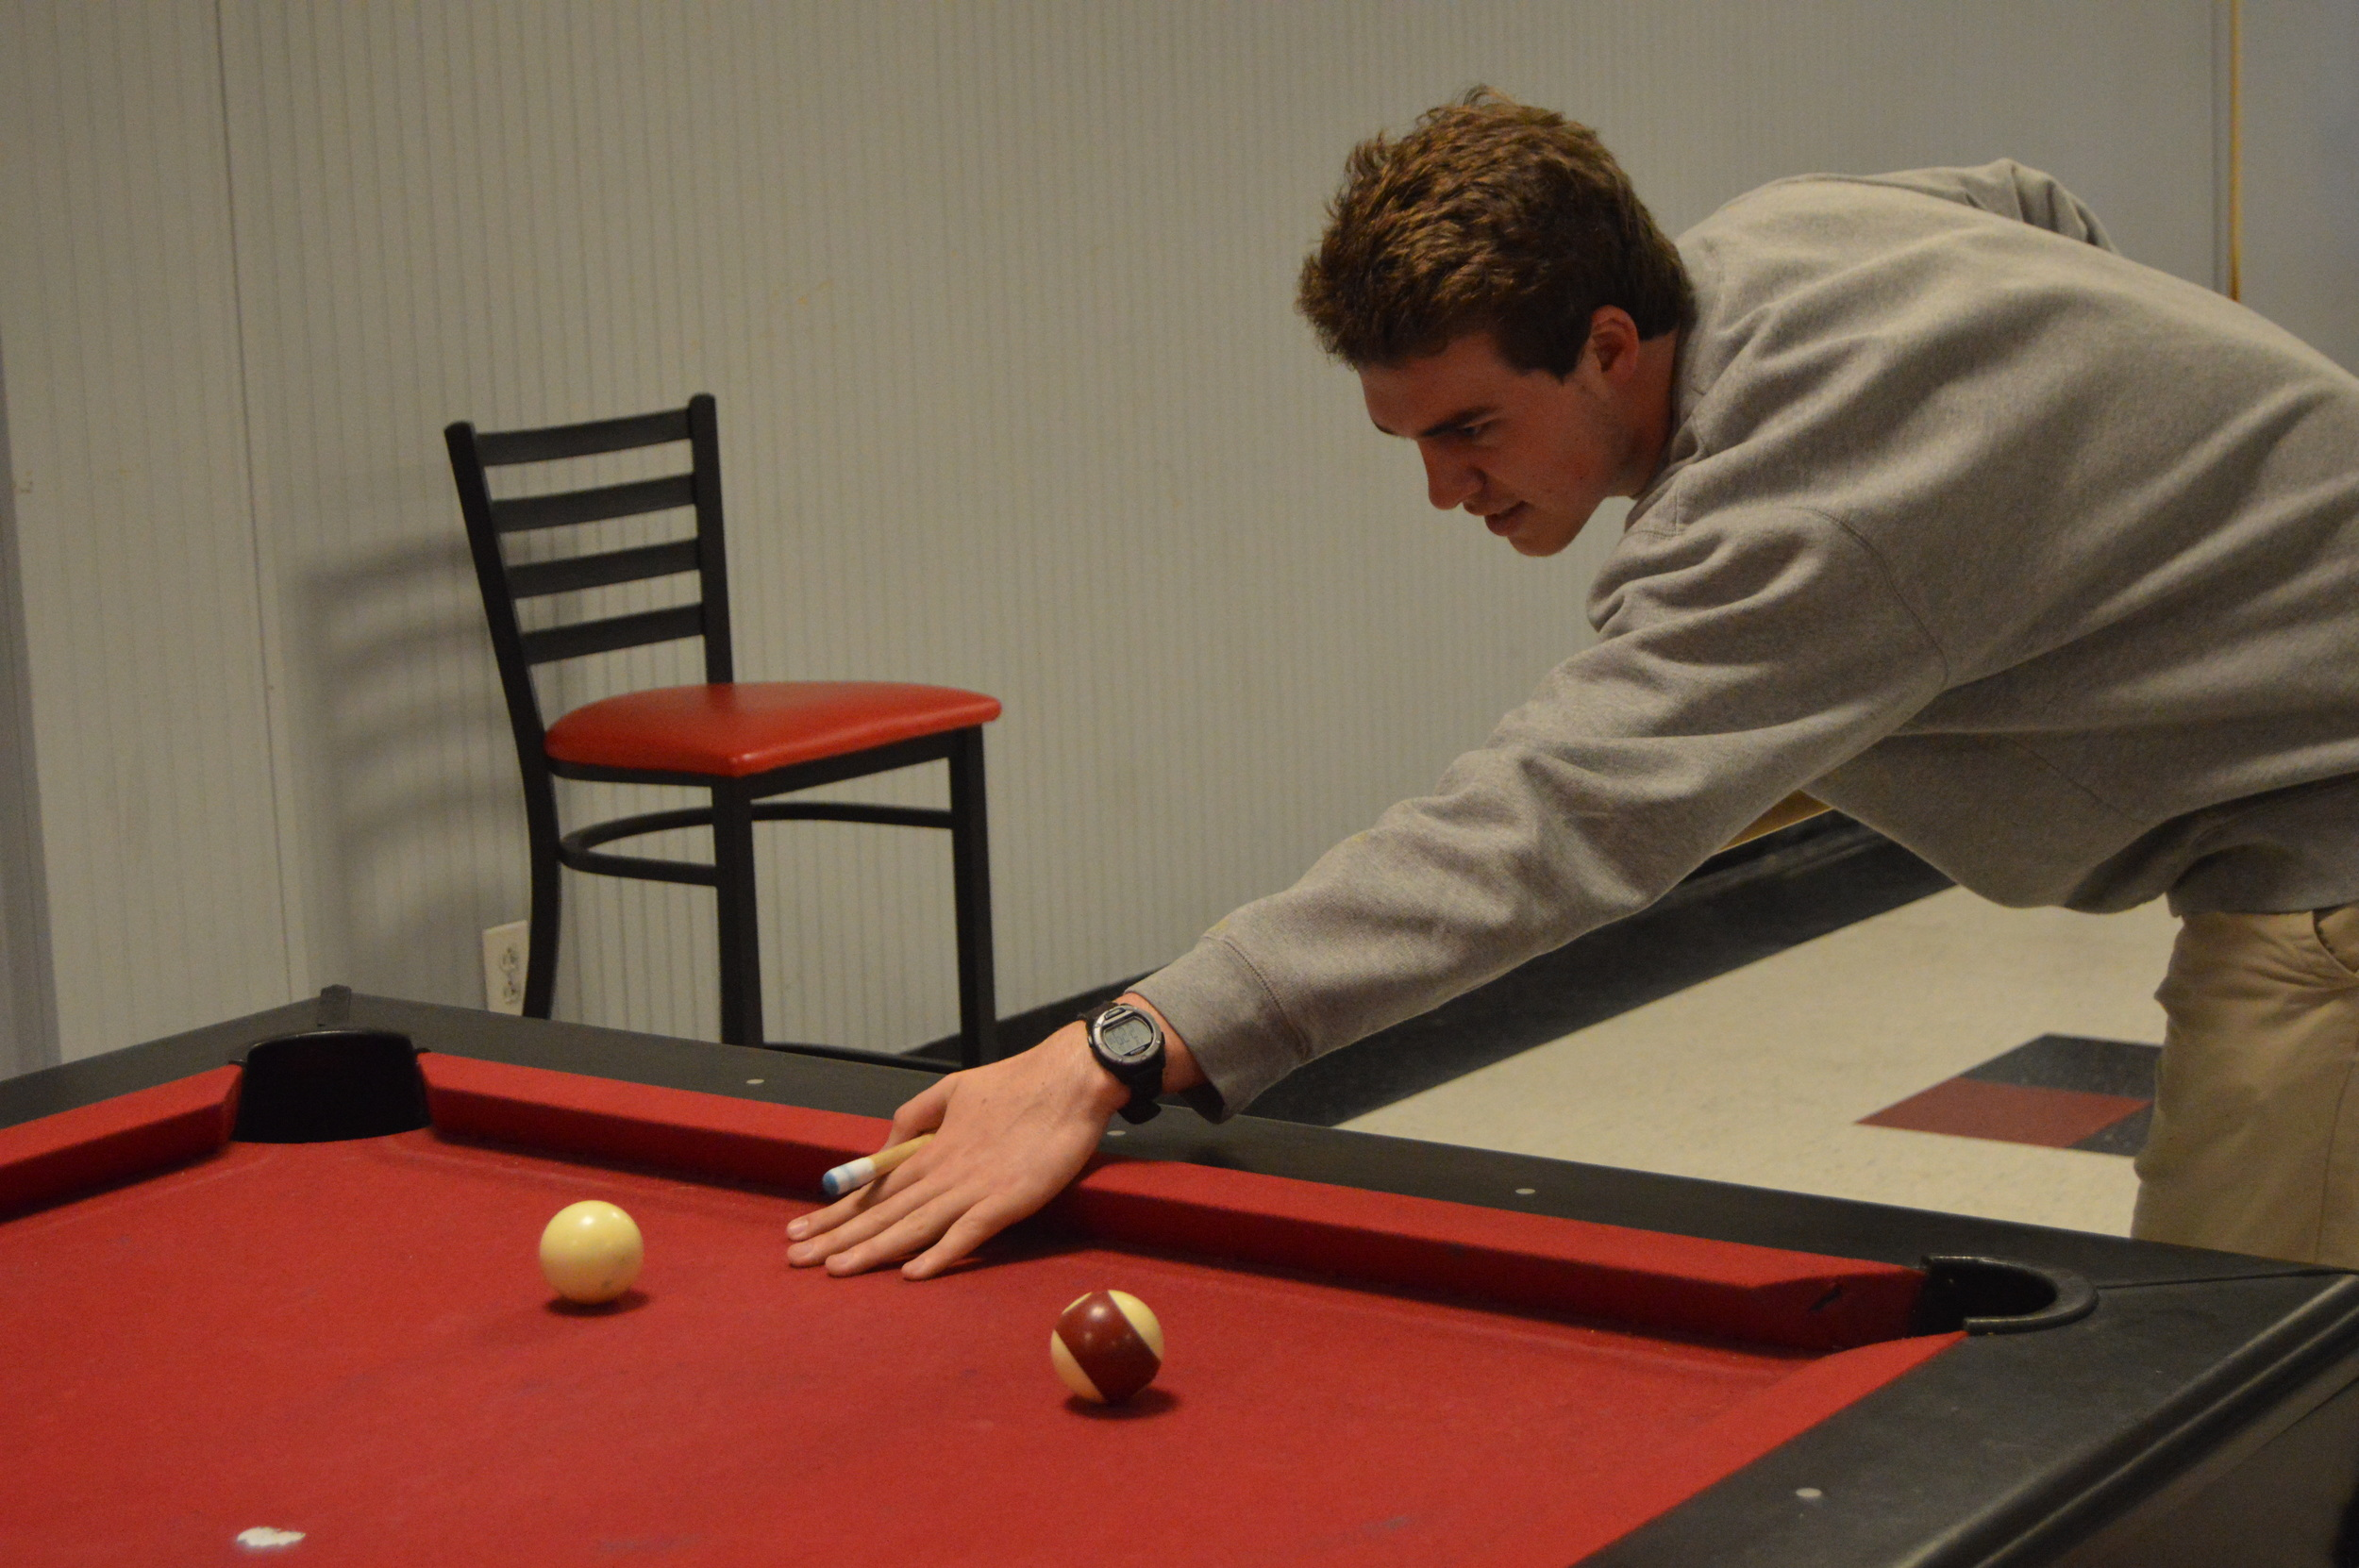 Jesse Erwin lines up to hit the cue ball.